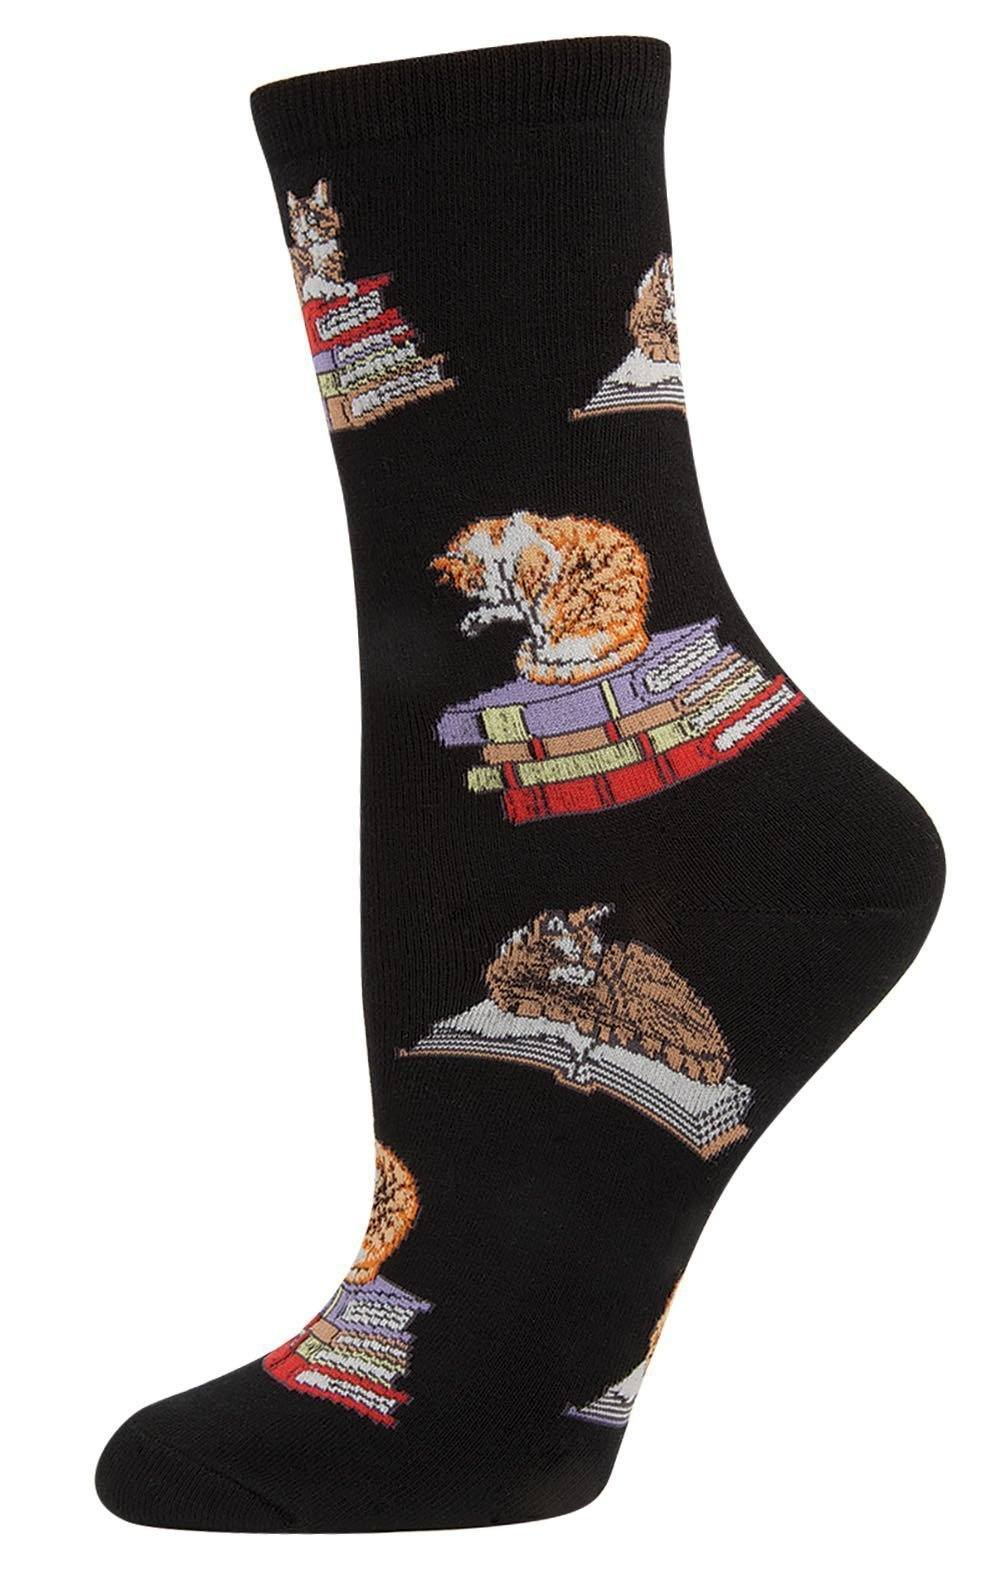 Socksmith - Cats On Books Crew Socks | Women's - Knock Your Socks Off